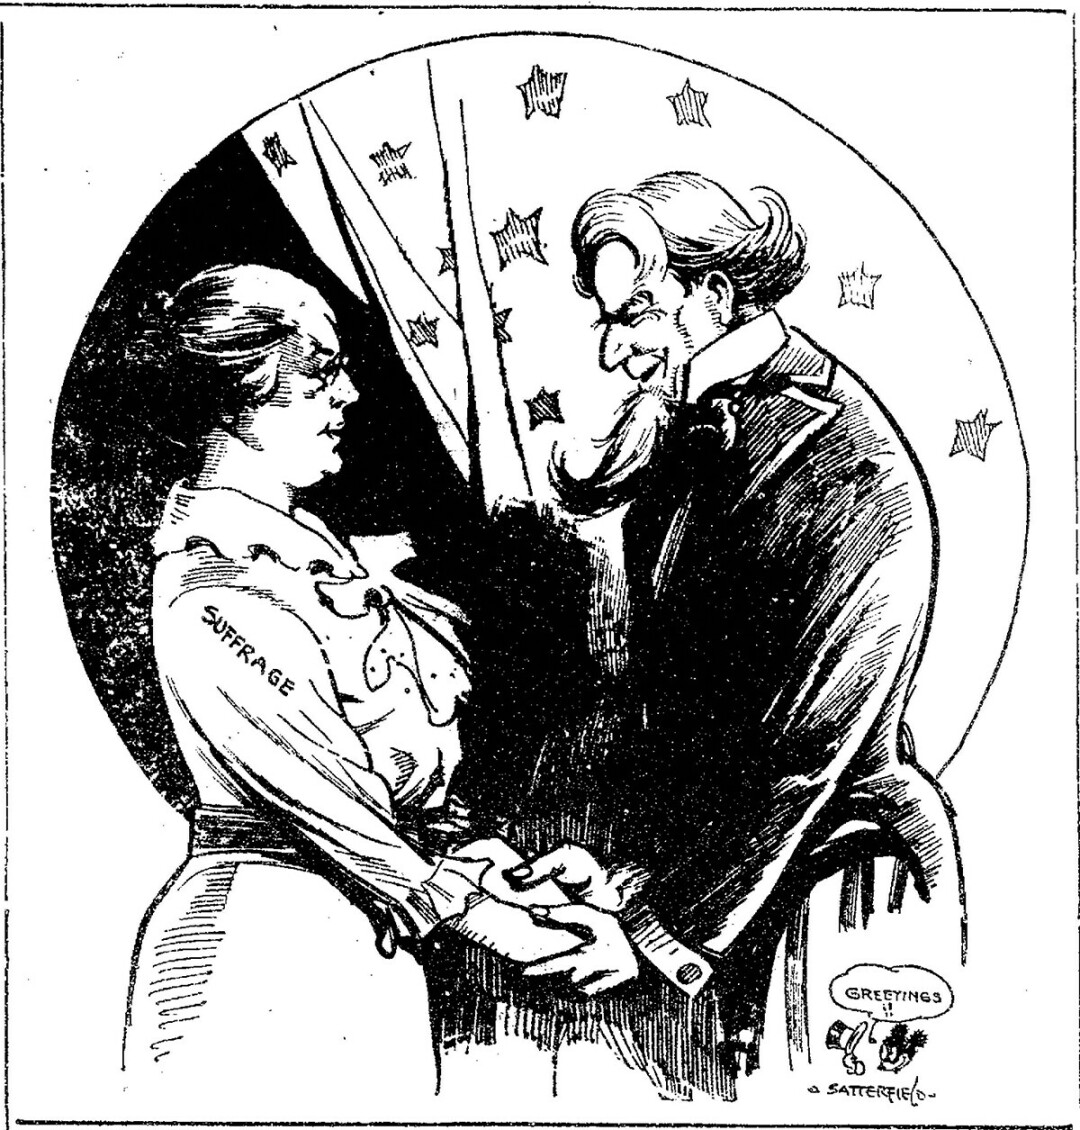 The Eau Claire Leader published this political cartoon after the final state needed ratified the nineteenth amendment. Eau Claire Leader. August, 1920.